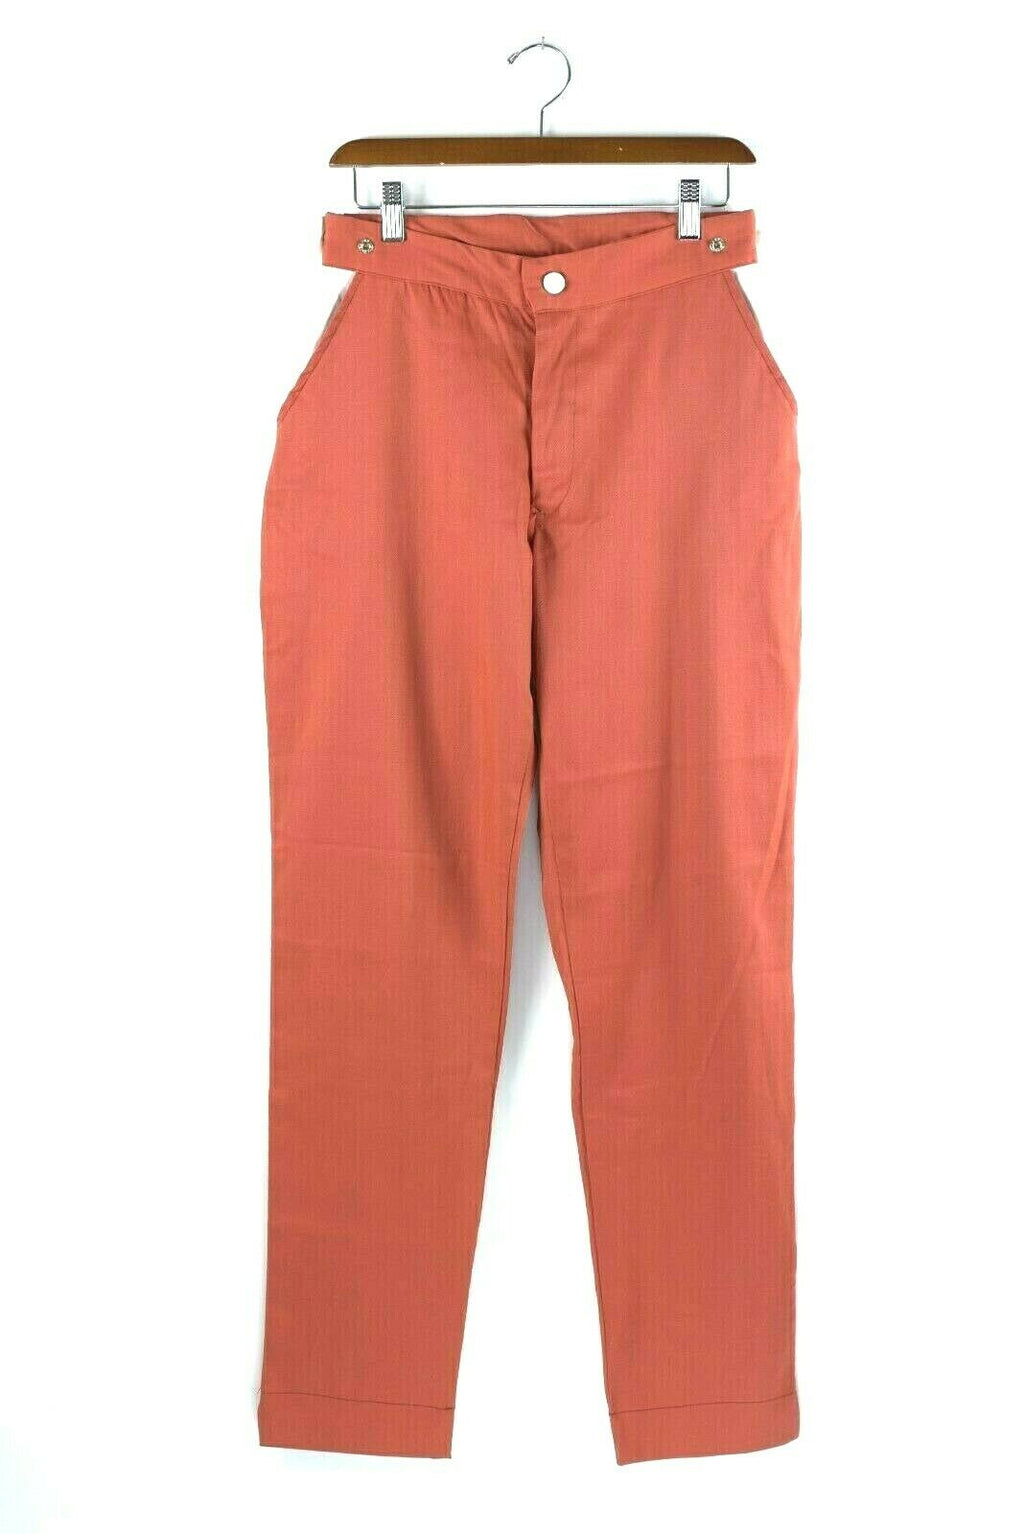 Jean Paul Gaultier JPG Womens Medium Orange Pants Hight Waist Cotton Vintage